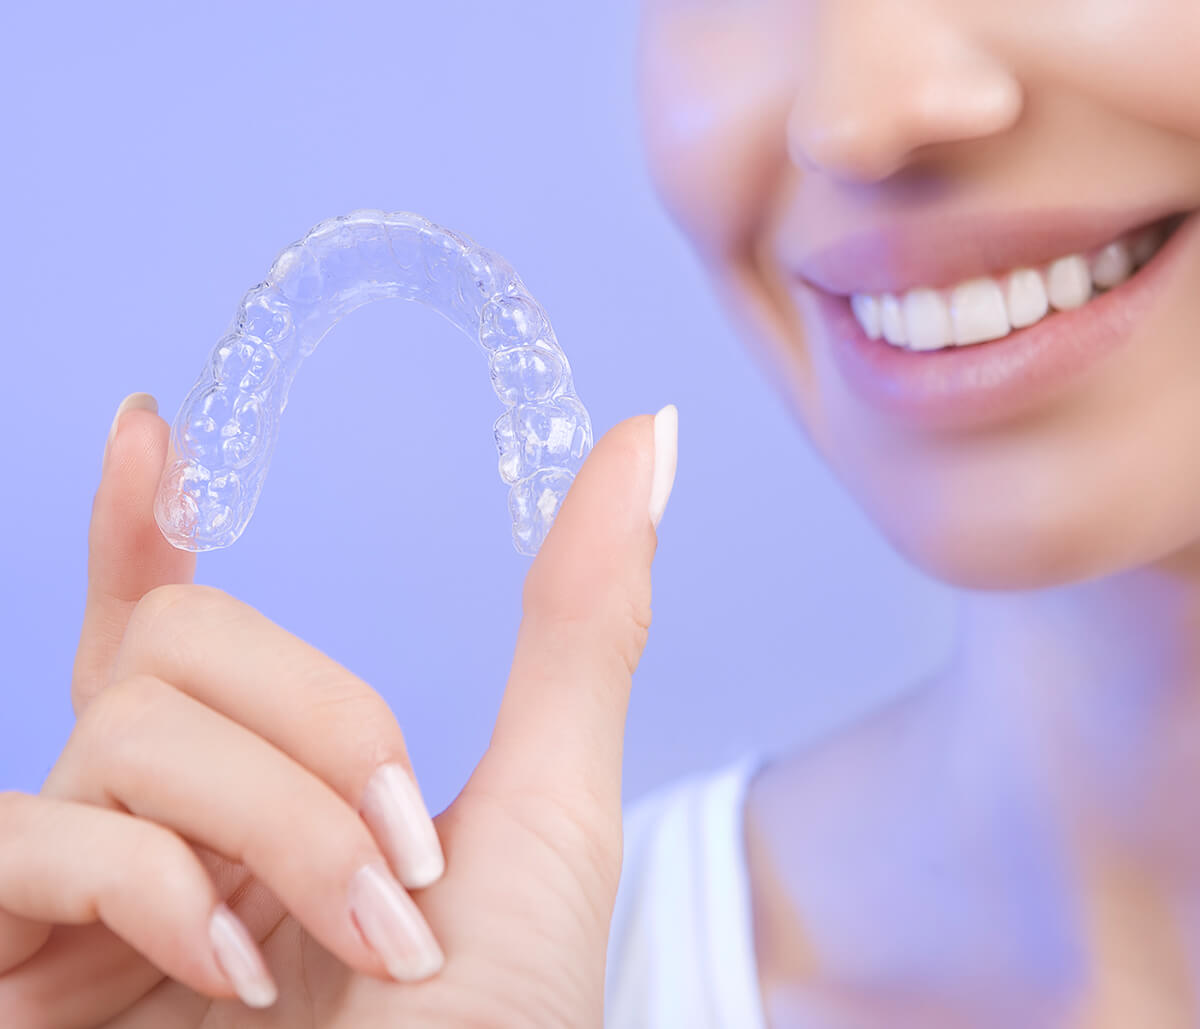 Invisalign Orthodontic Treatment at Sequoyah Dental Arts in Knoxville TN Area